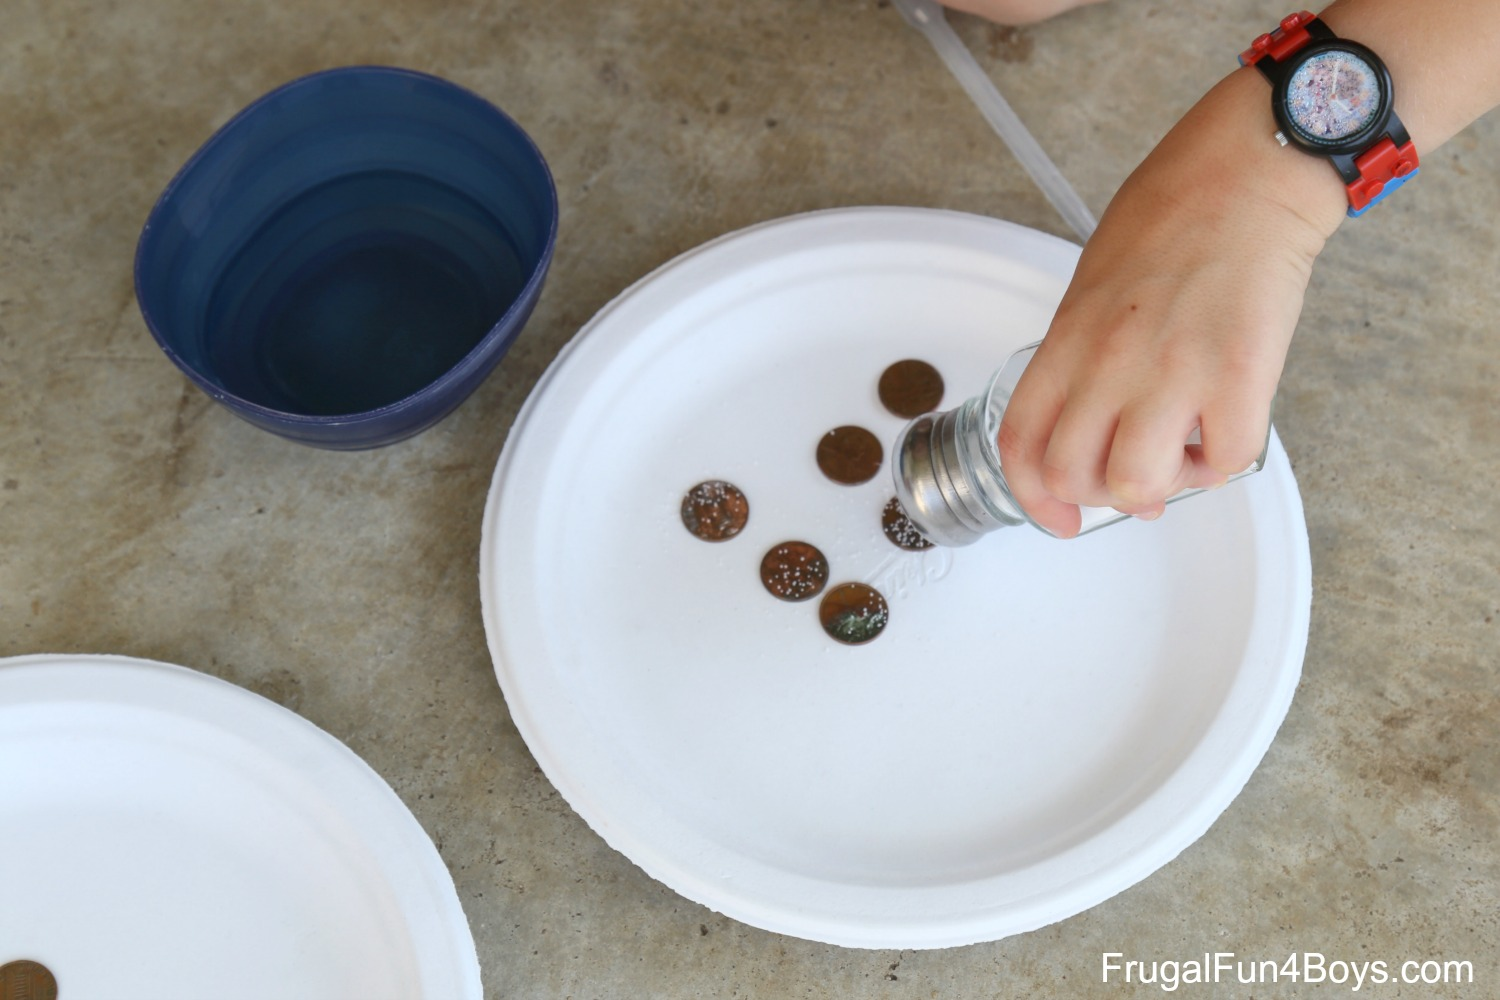 Science for Kids: Make Old Pennies Shiny Again!